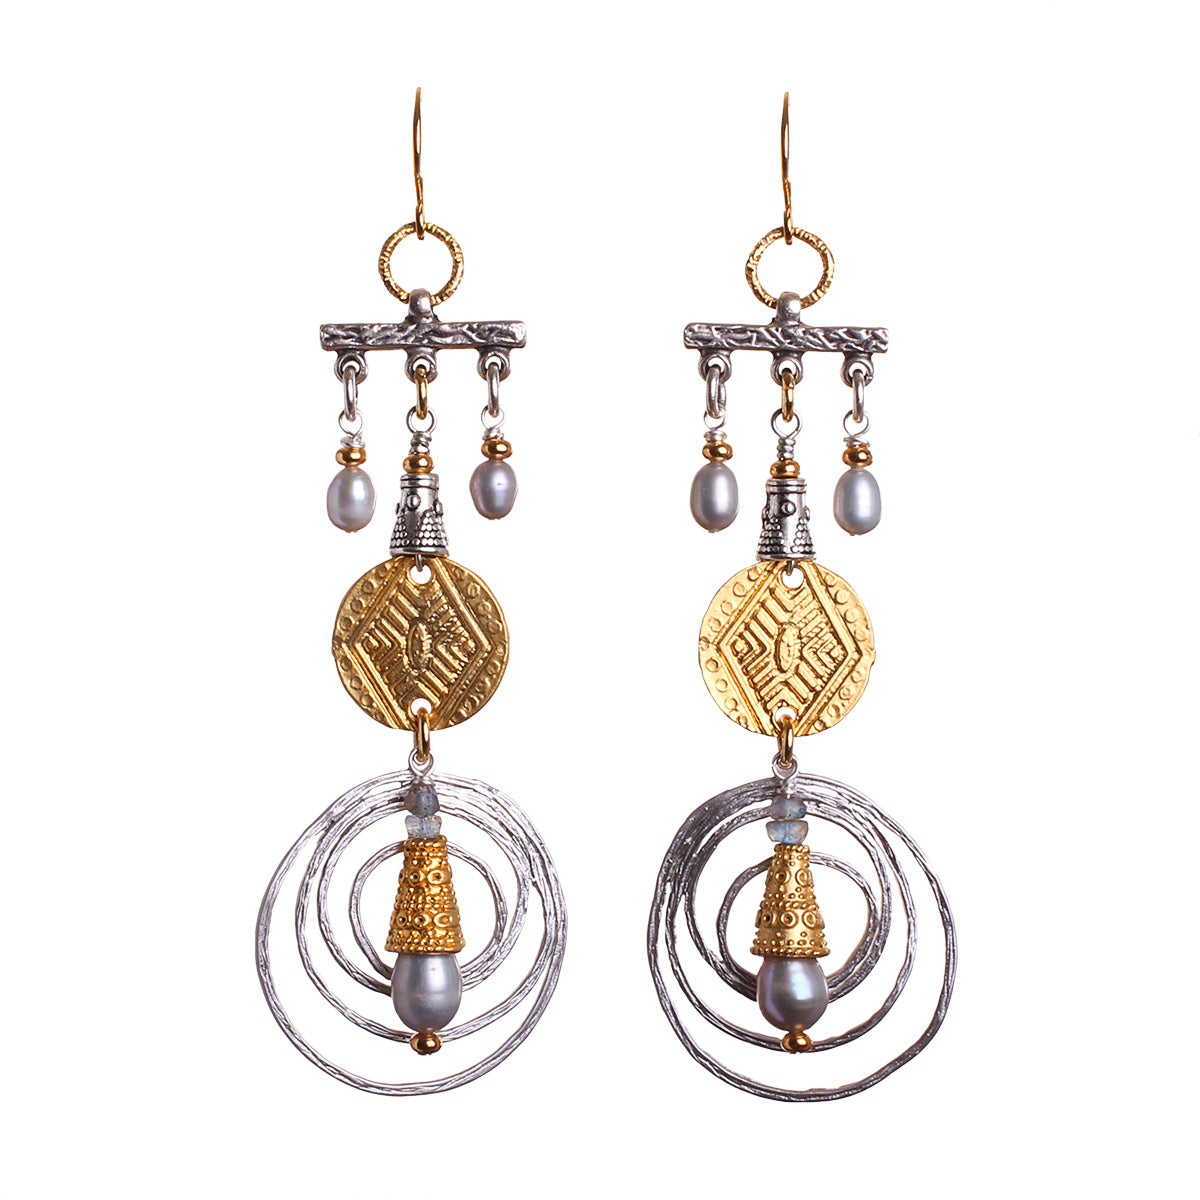 N°588 The Gentle Pearl Rebellion Statement Earrings